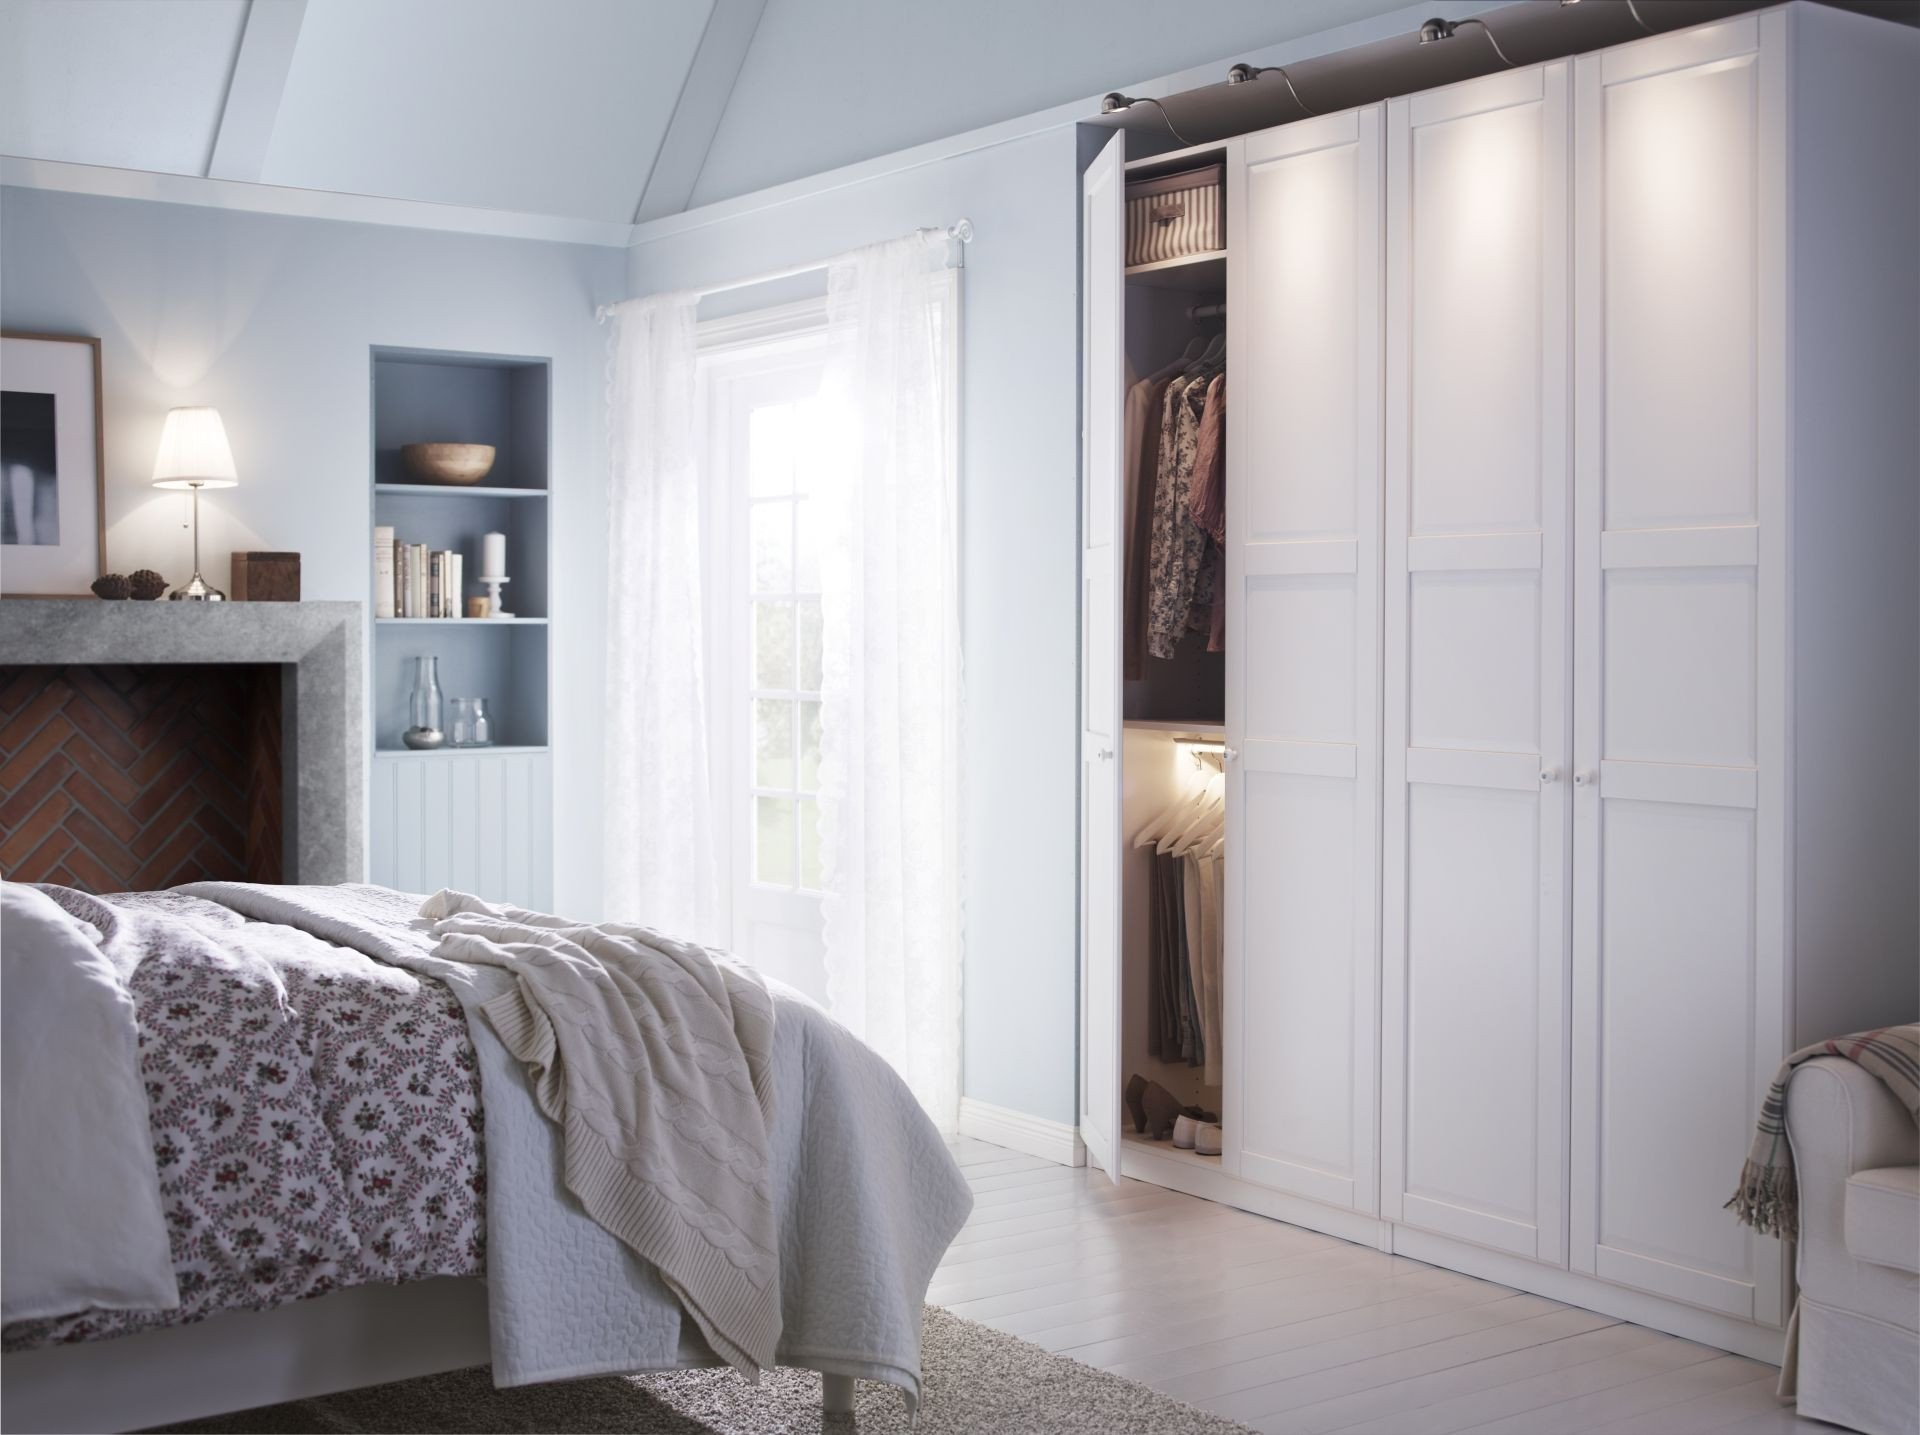 Ikea Bedroom Furniture Wardrobes Beautiful Should You Love Home Decor You Really Will Love This Cool